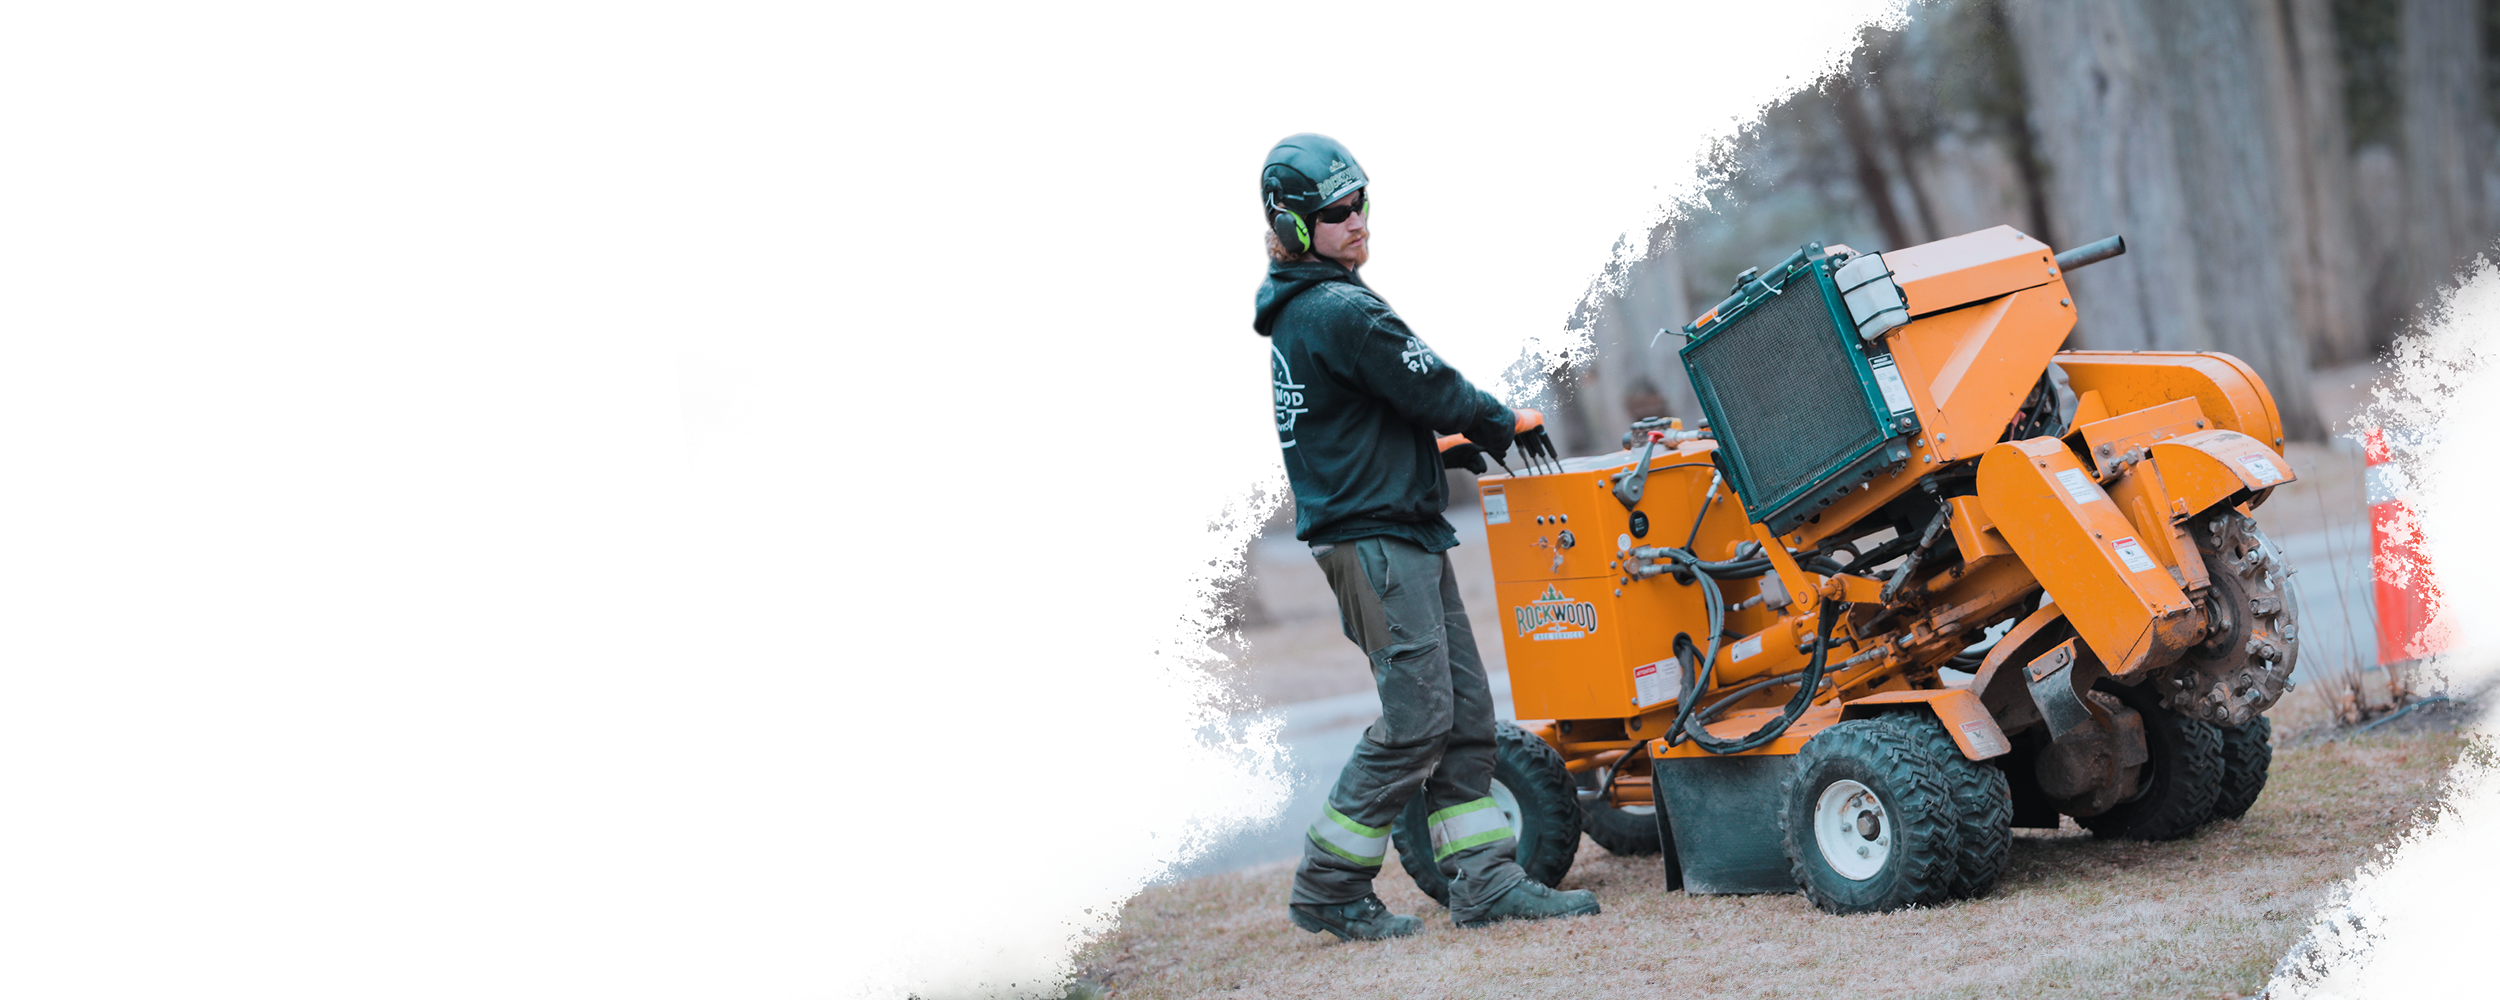 STUMP REMOVAL & CHIPPING - For Every Tree, There's a Stump